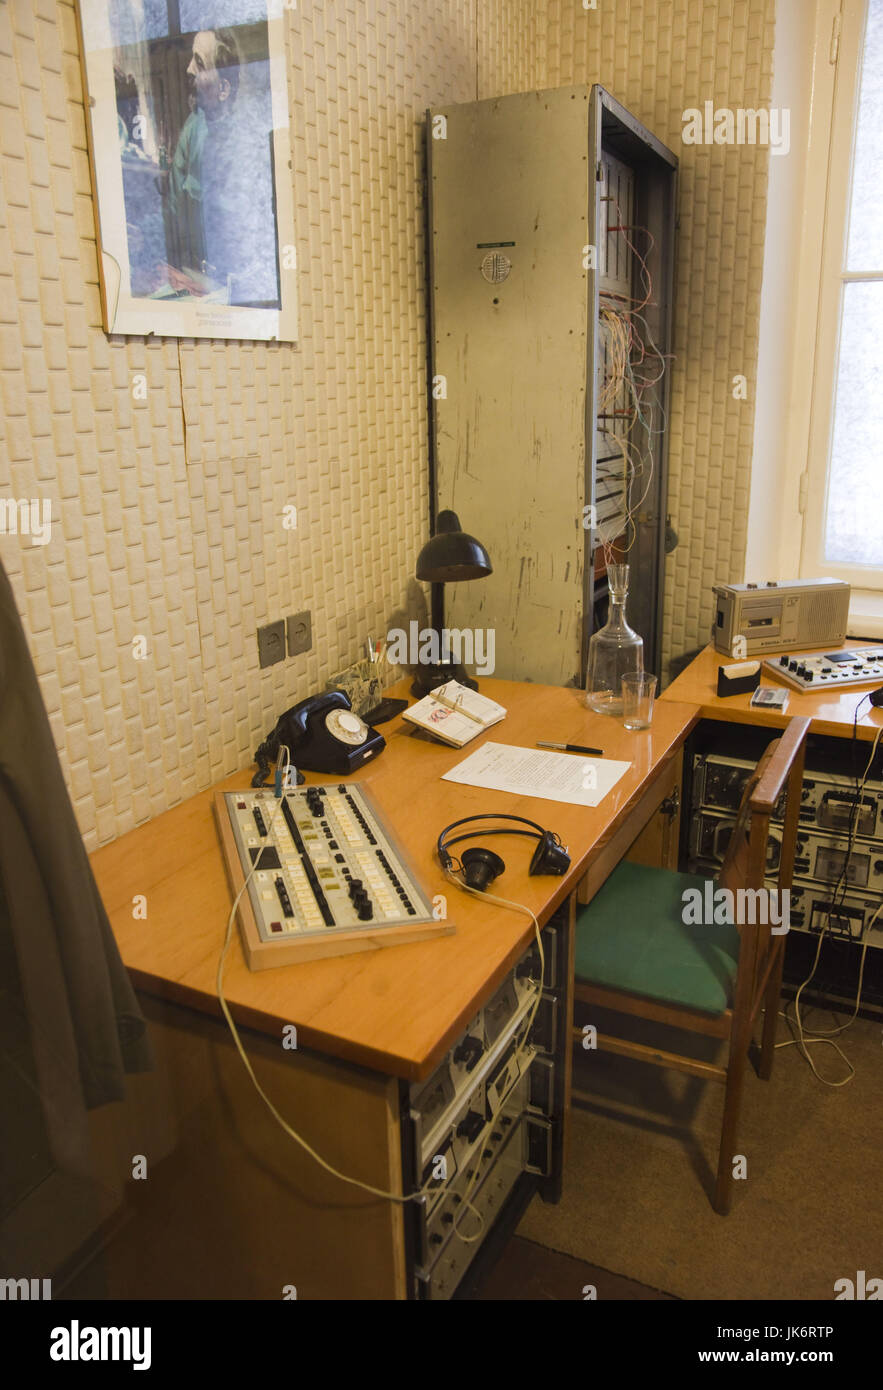 Lithuania, Vilnius, Museum of Genocide Victims, former KGB headquarters, guards area - Stock Image